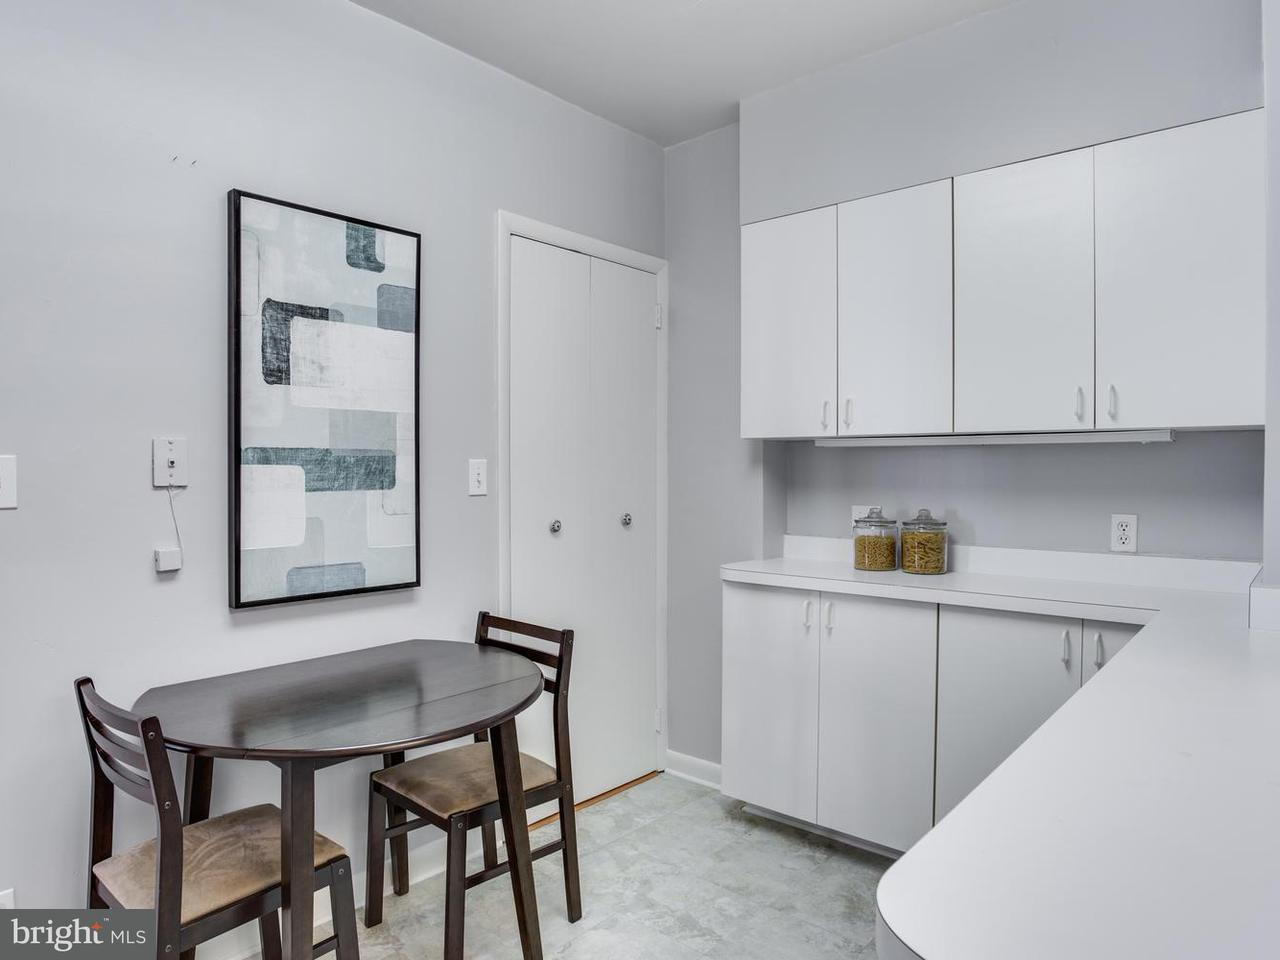 Additional photo for property listing at 3900 Watson Pl Nw #8d/E 3900 Watson Pl Nw #8d/E Washington, Distretto Di Columbia 20016 Stati Uniti